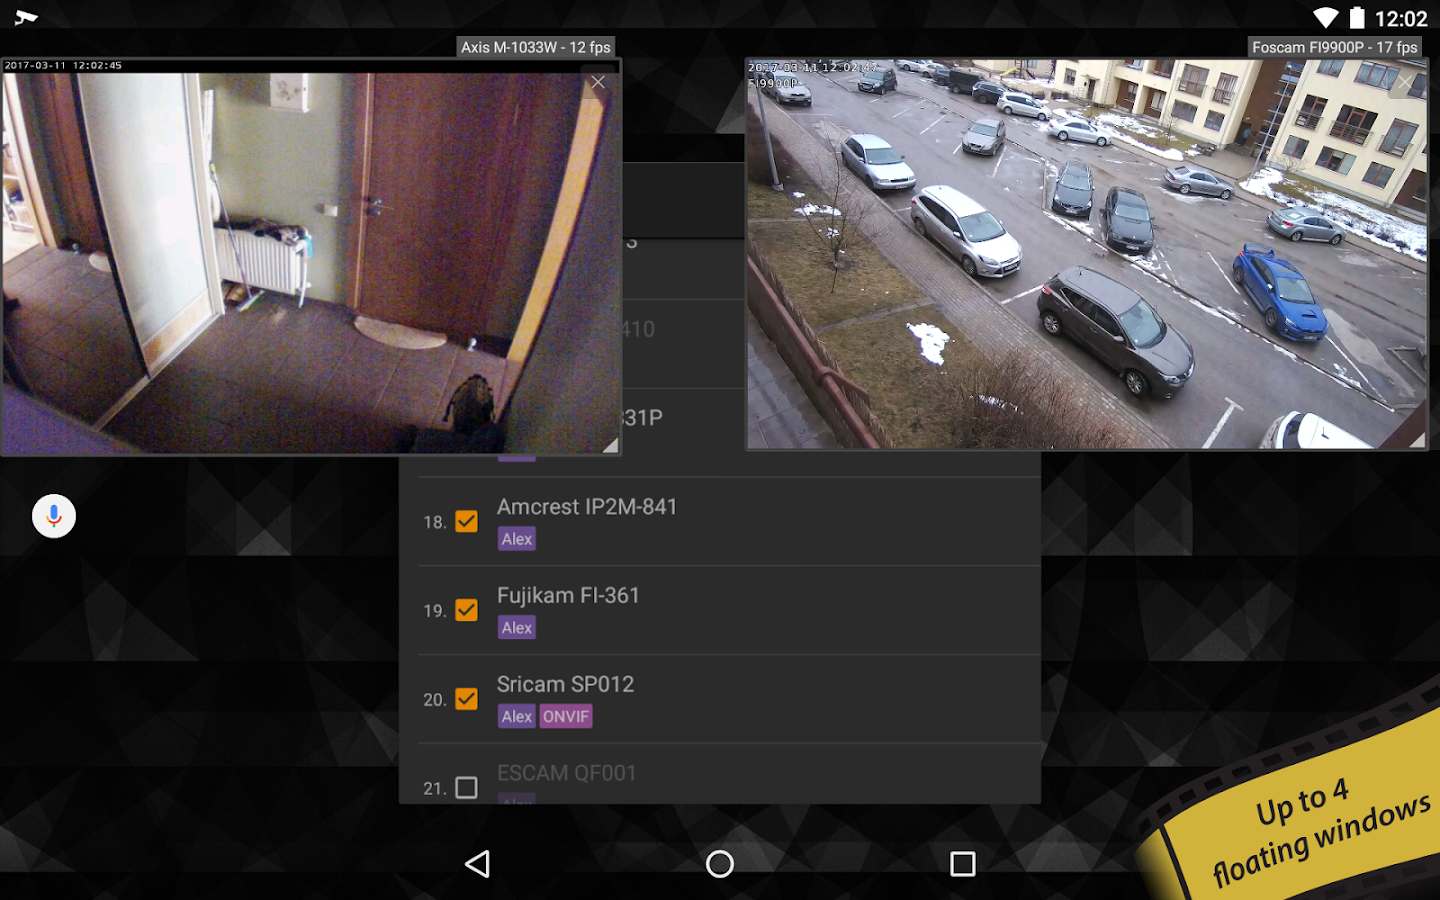 tinyCam PRO - Swiss knife to monitor IP cam- screenshot